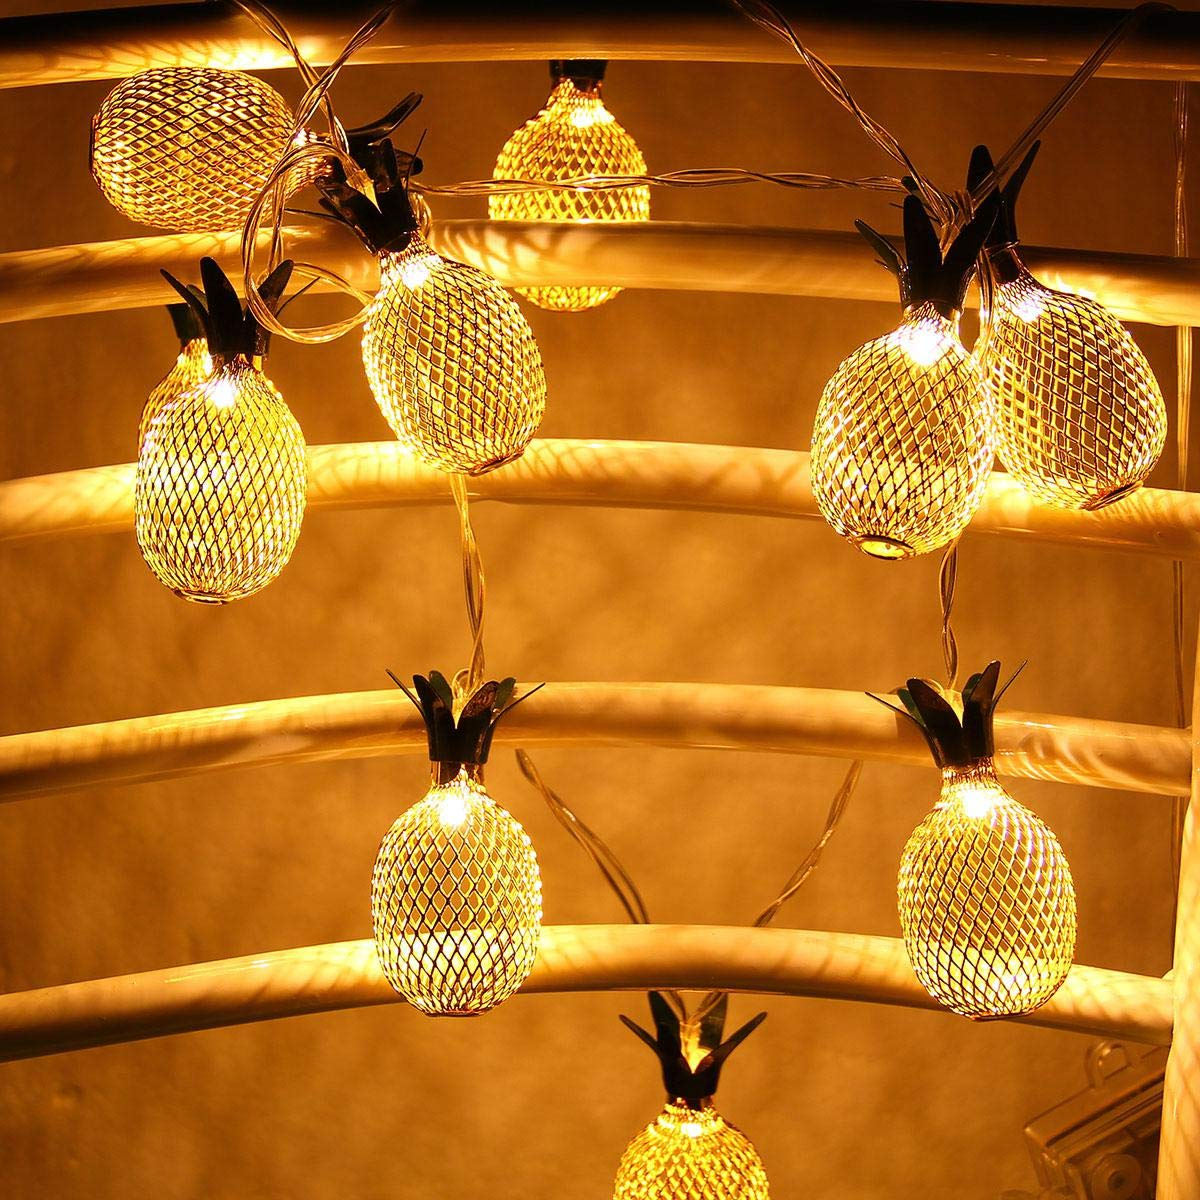 Pineapple String Lights, 200in/5m 40 LED Bulbs WaterproofSolar ChargingLantern String Lights with 2 Light Mode Fairy Lights for Wedding Garden Festival Party Halloween Christmas Indoor & Outdoor by Umiwe (Image #6)